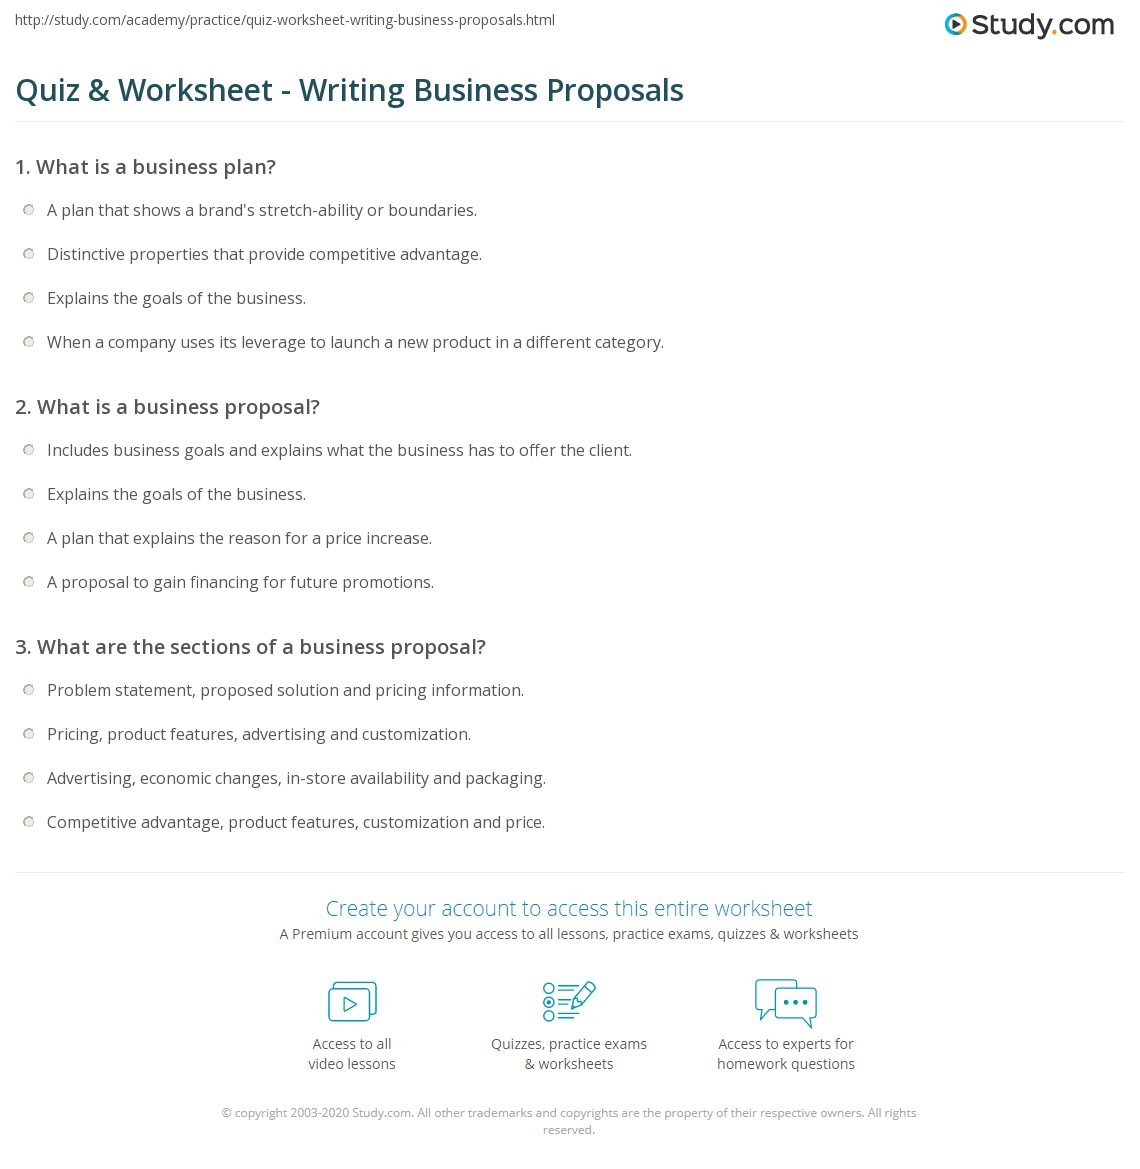 print how to write a business proposal worksheet